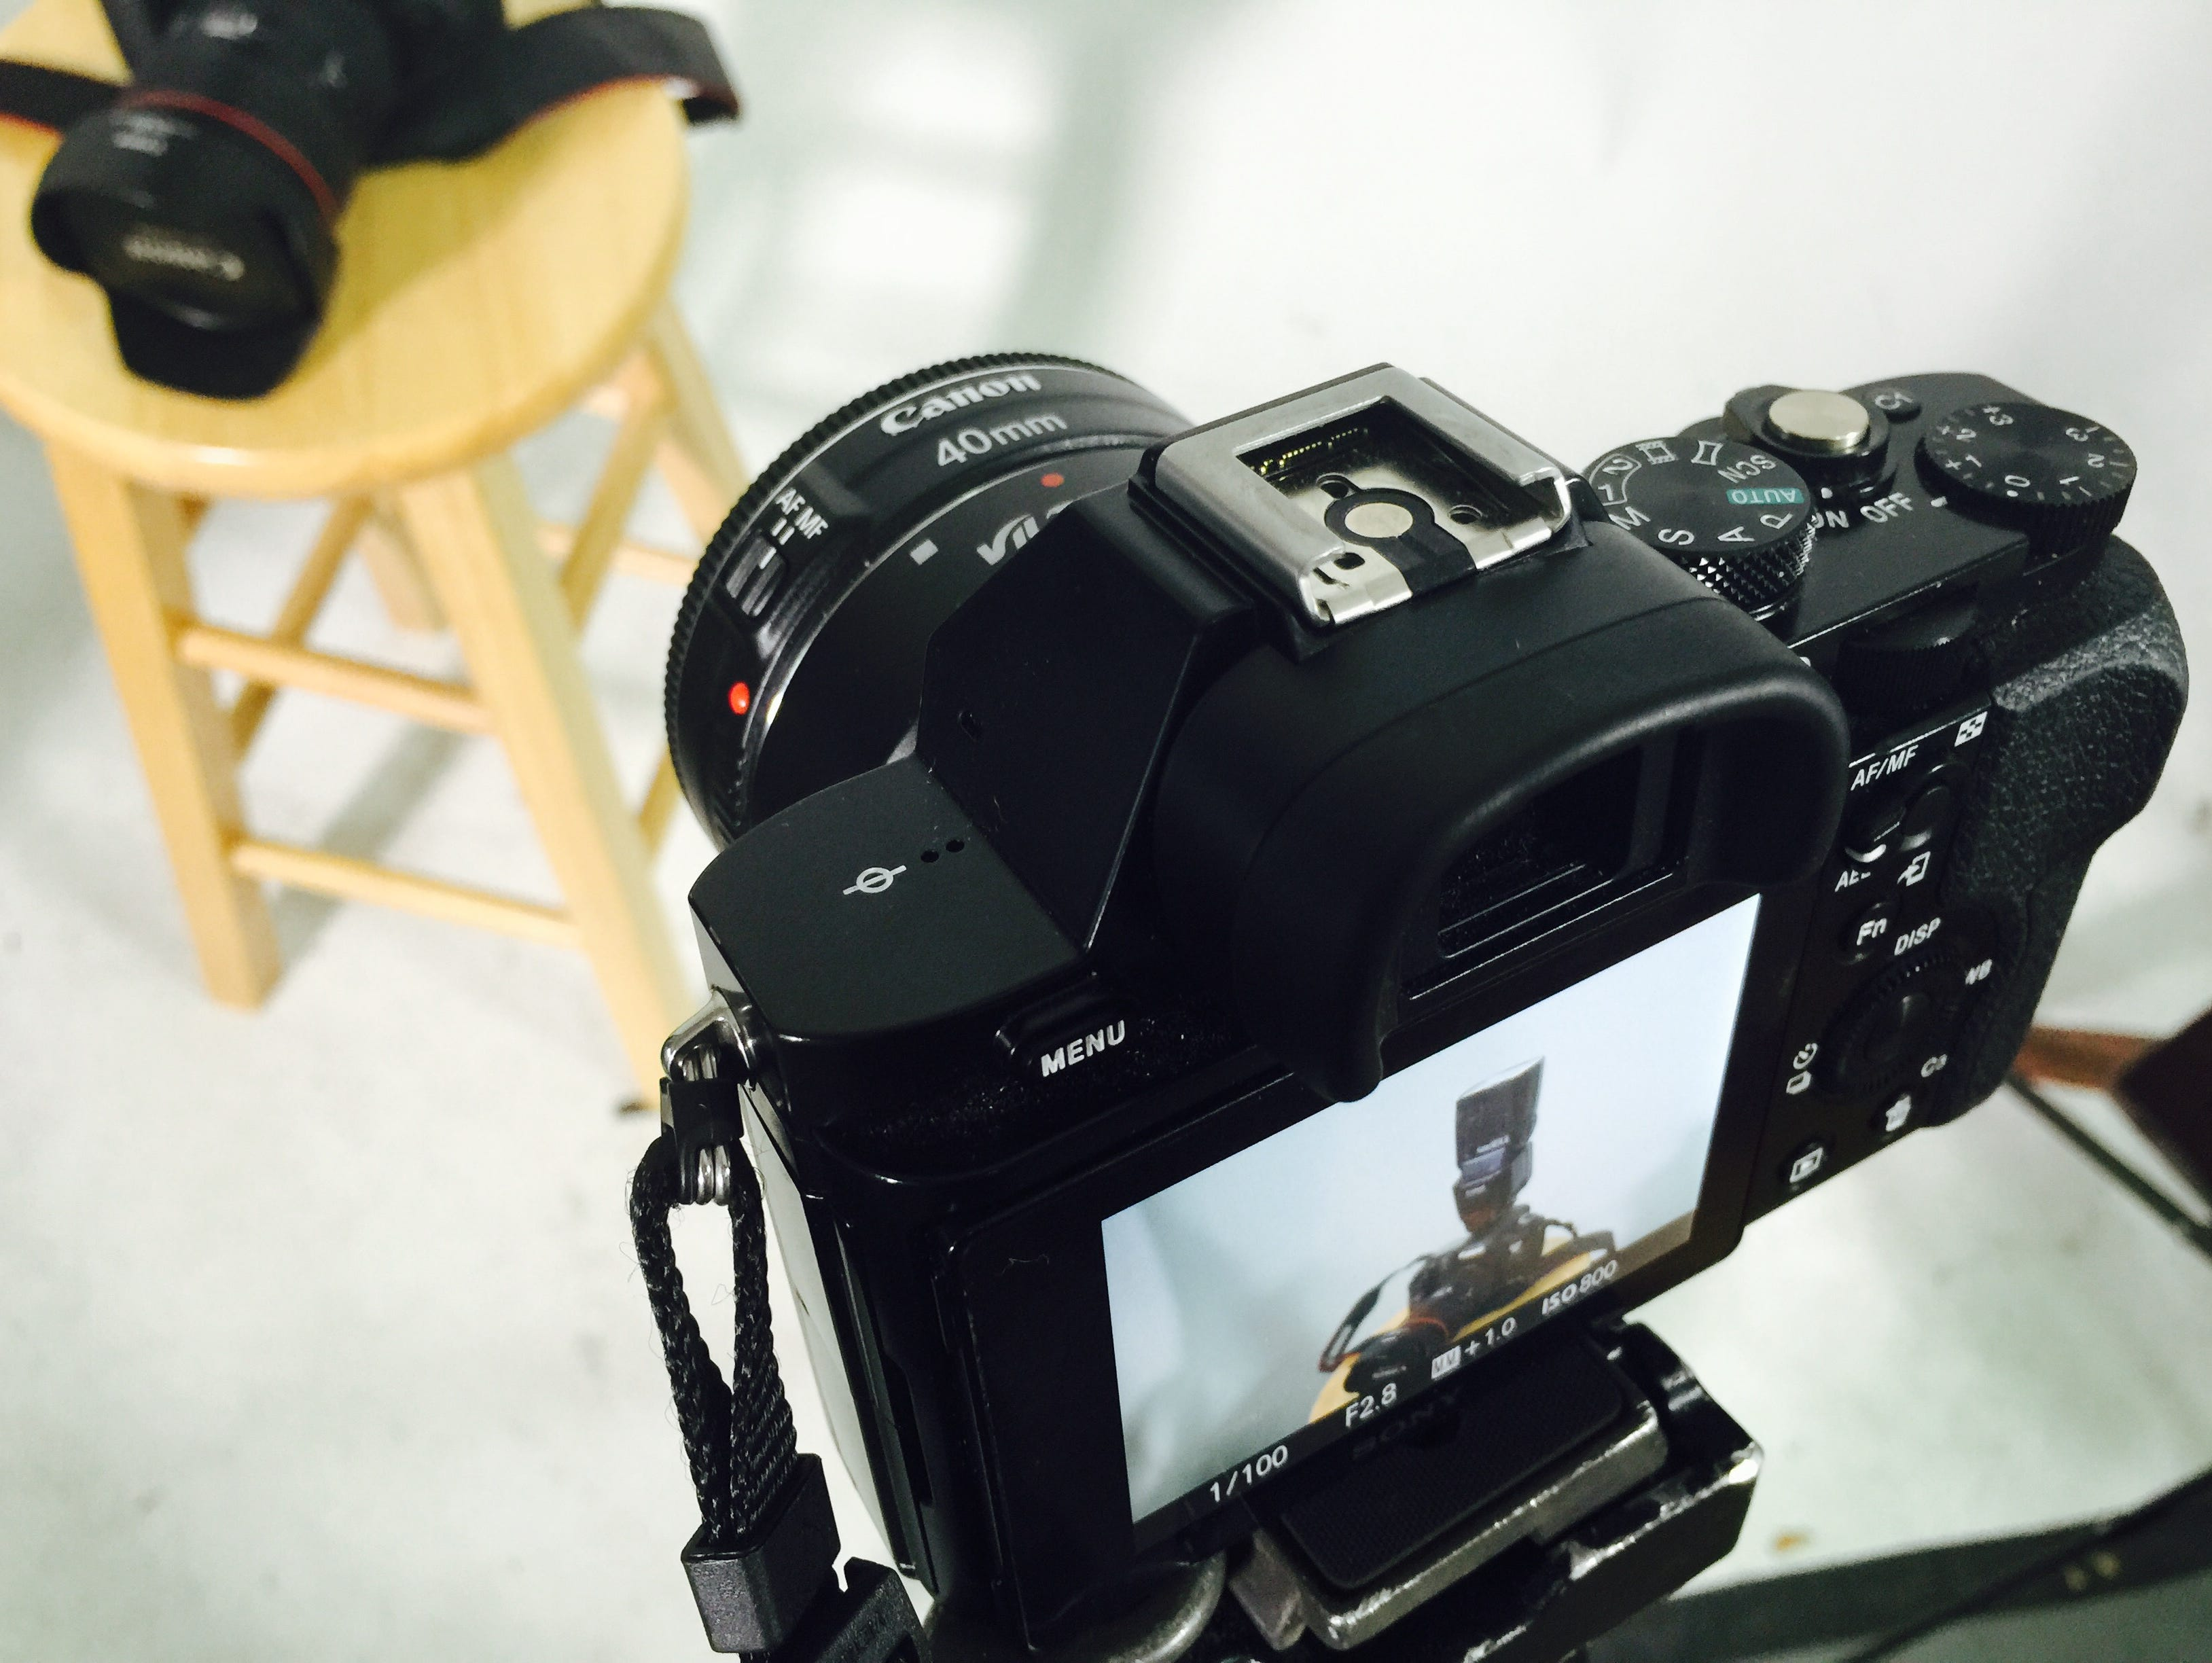 An iPhone is shooting a Sony A7S shooting a Canon 5D Mark III